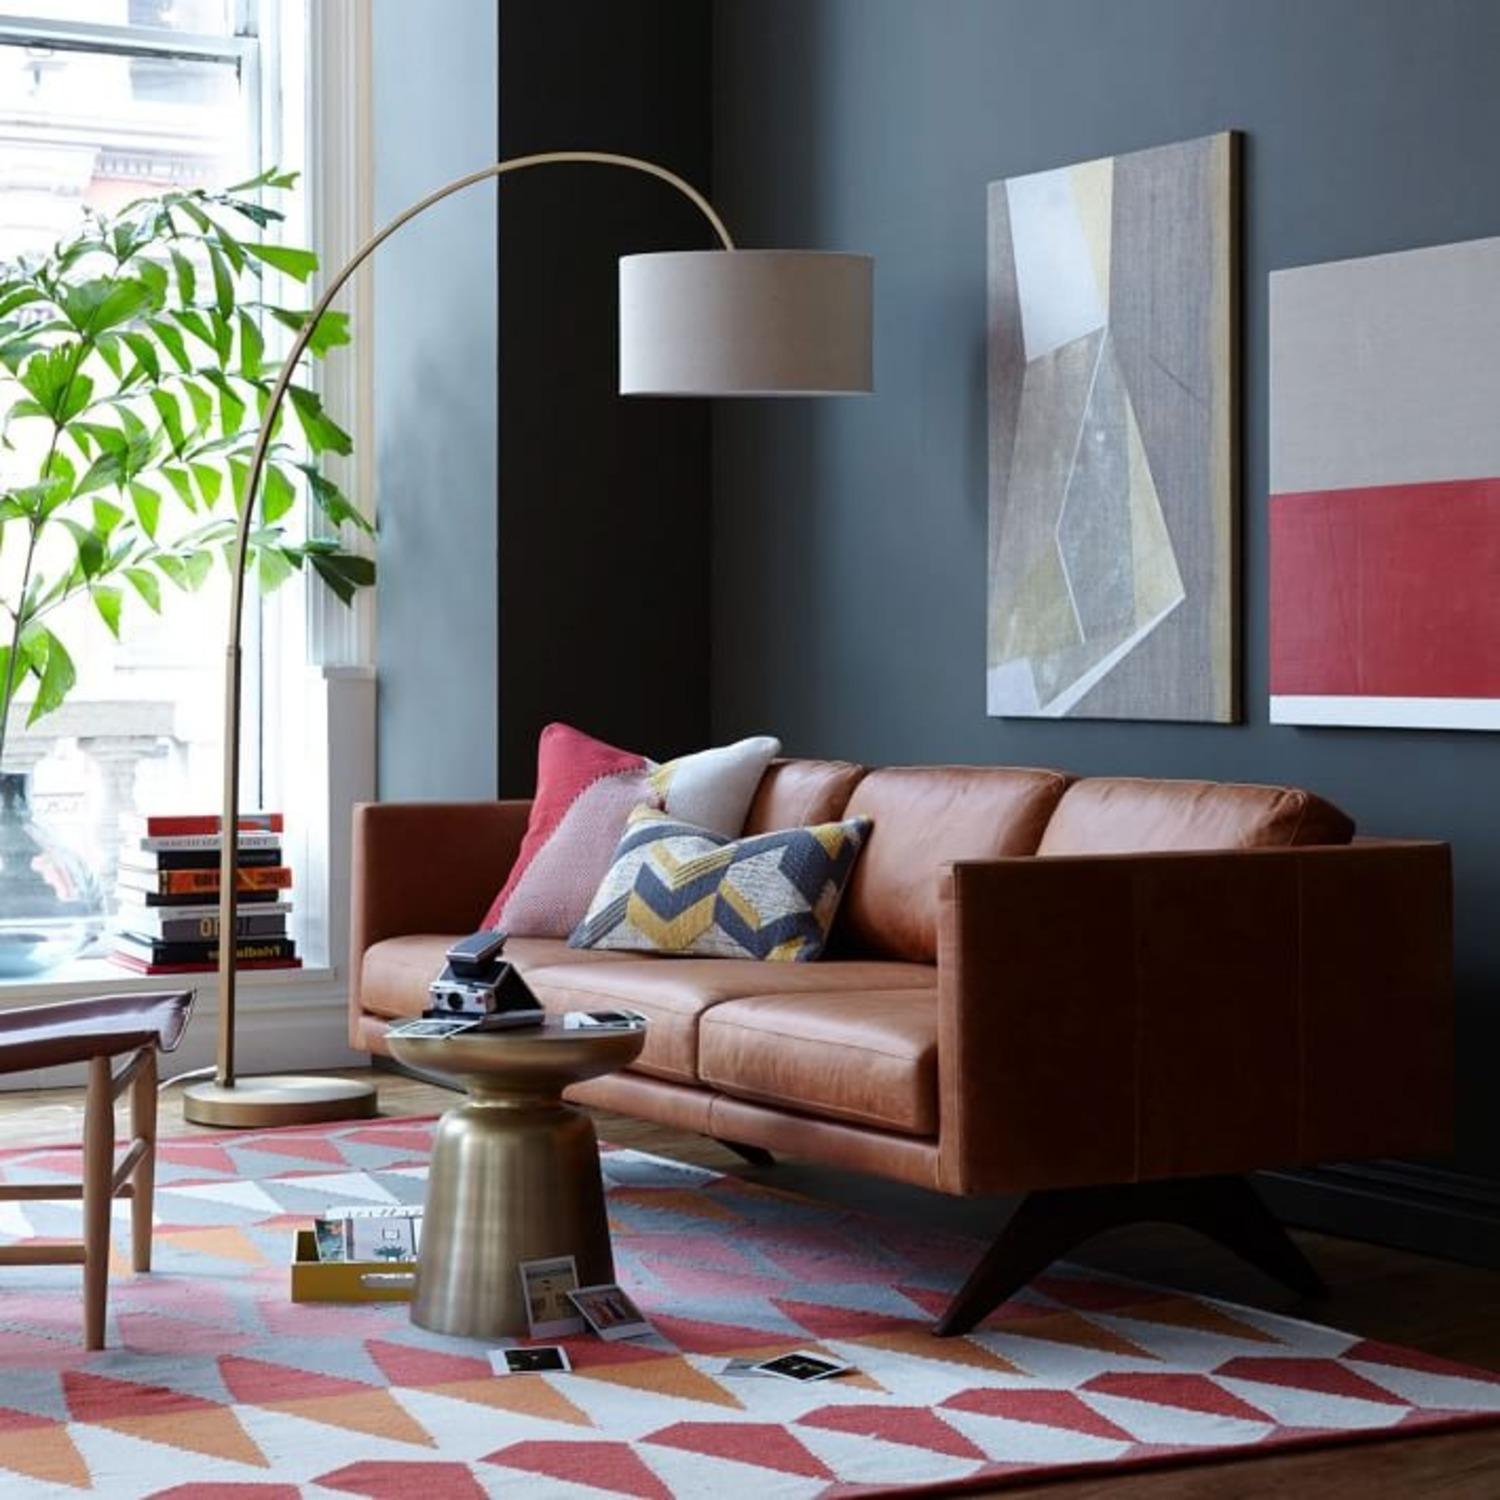 West Elm Cfl Overarching Floor Lamp - image-3